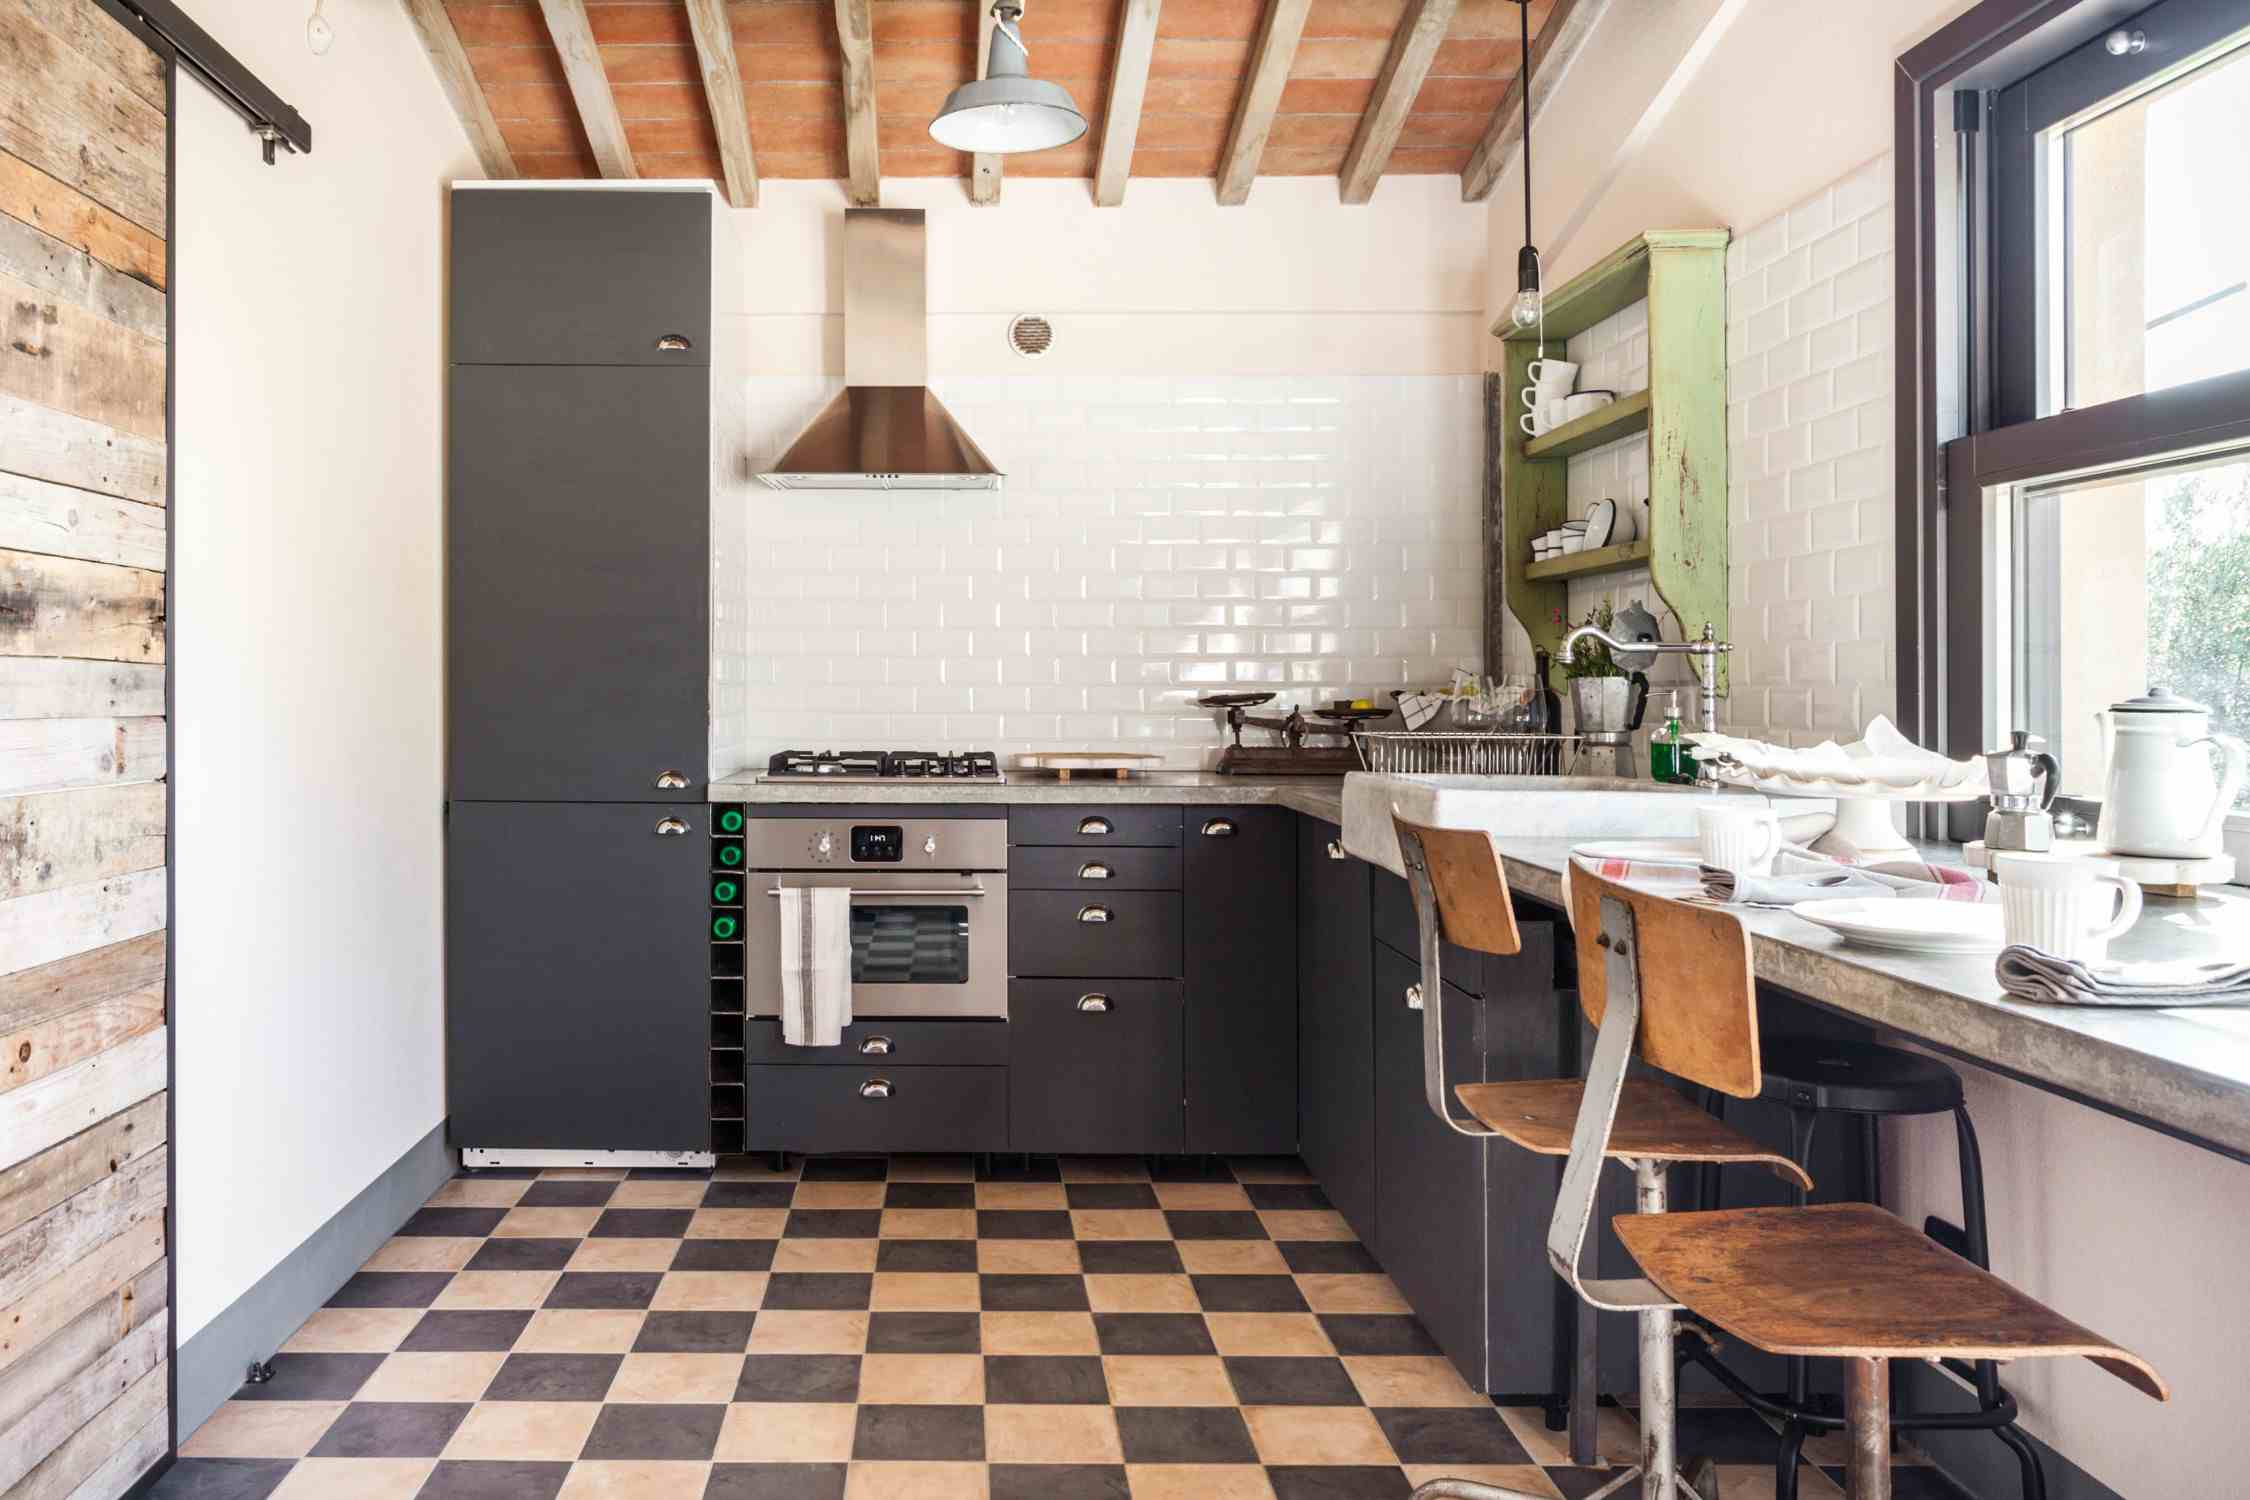 Incredible 13 Tiny Houses For Rent On Airbnb That Make It Easy To See Best Image Libraries Weasiibadanjobscom